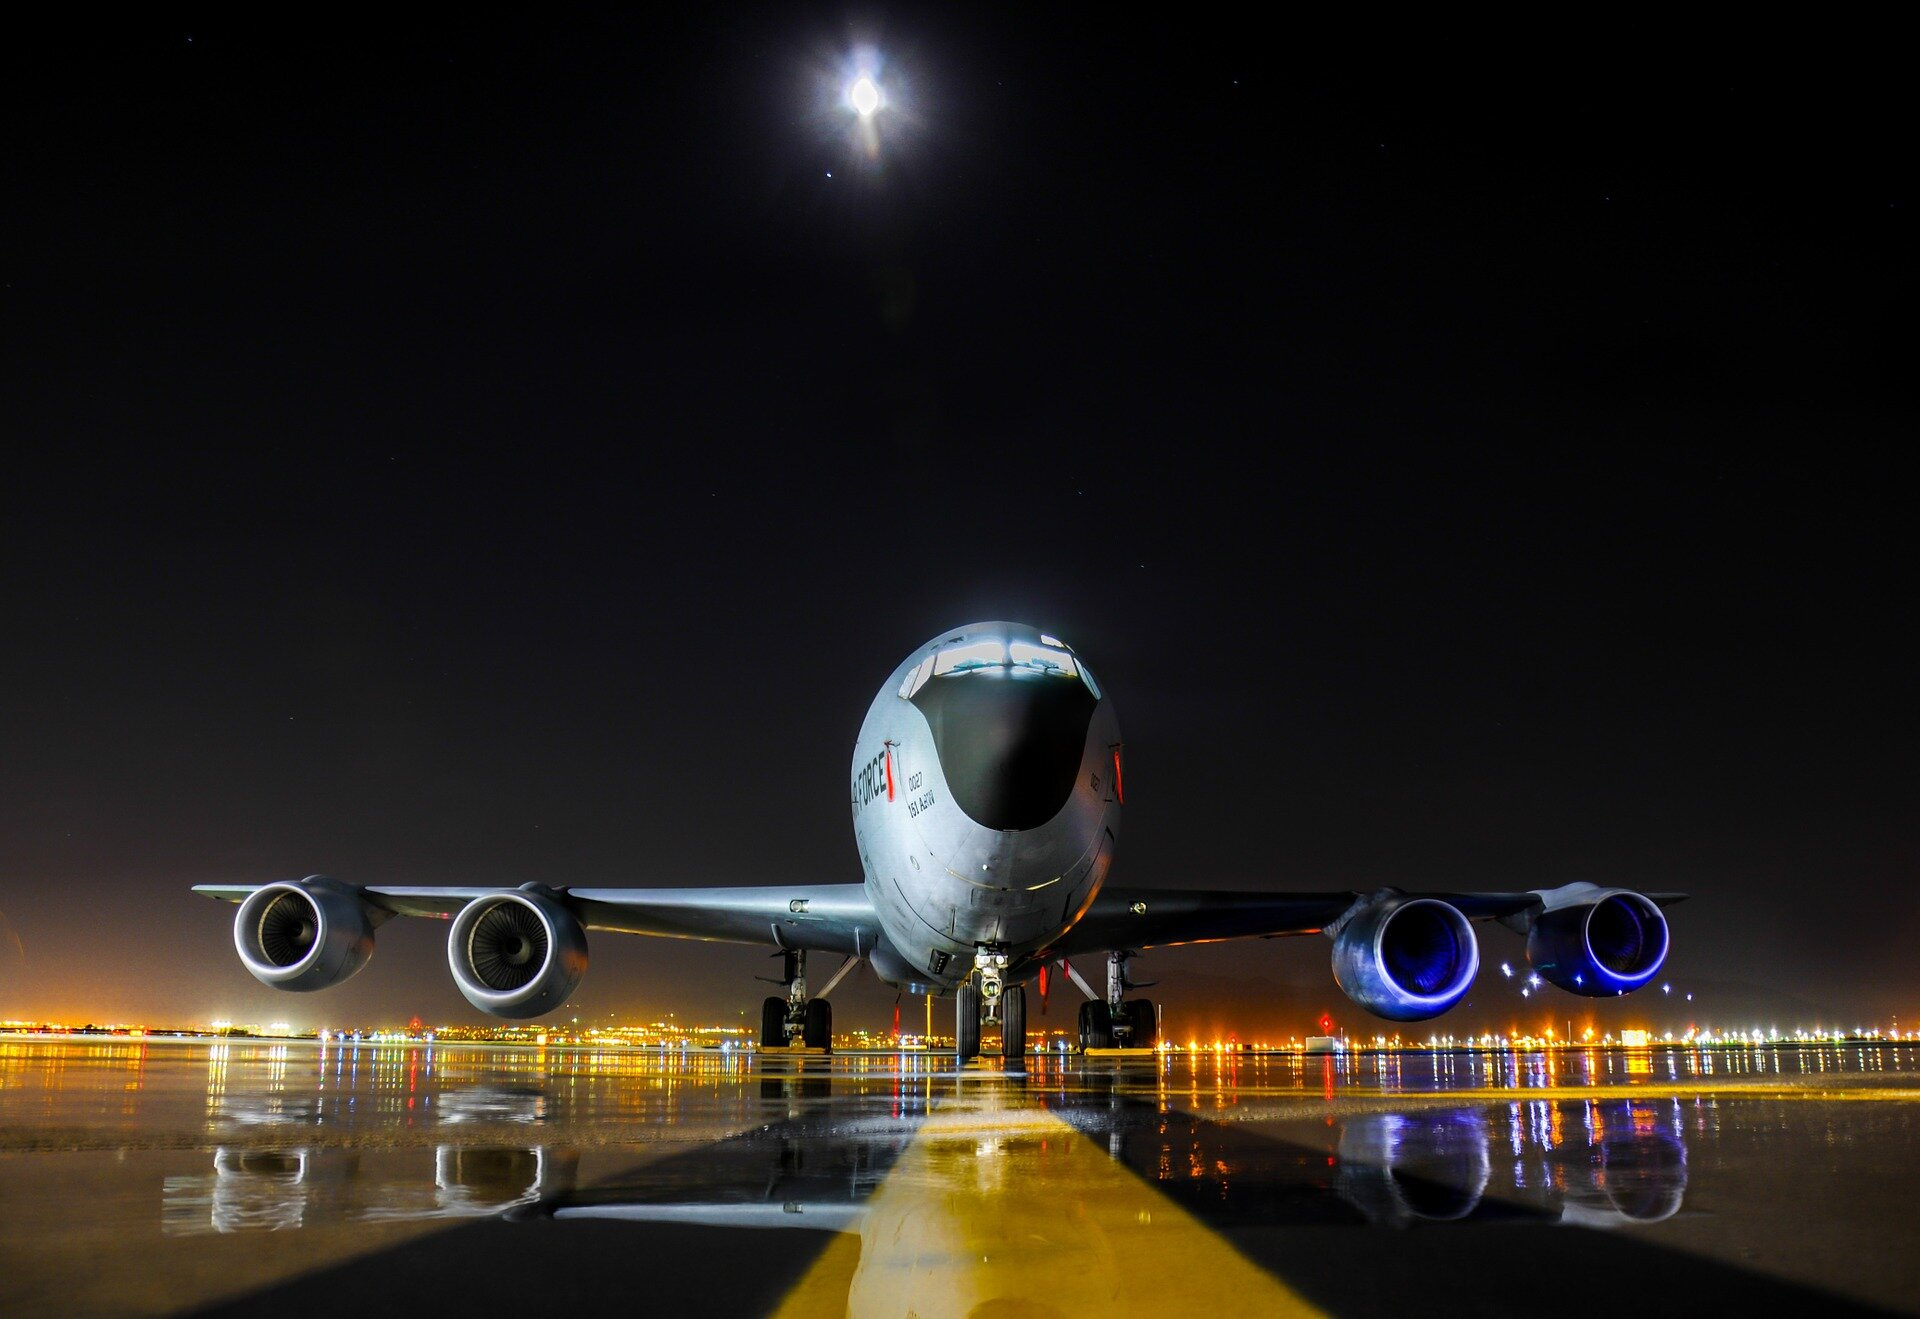 Synthetic oils from municipal waste offers hope of alternative jet fuels